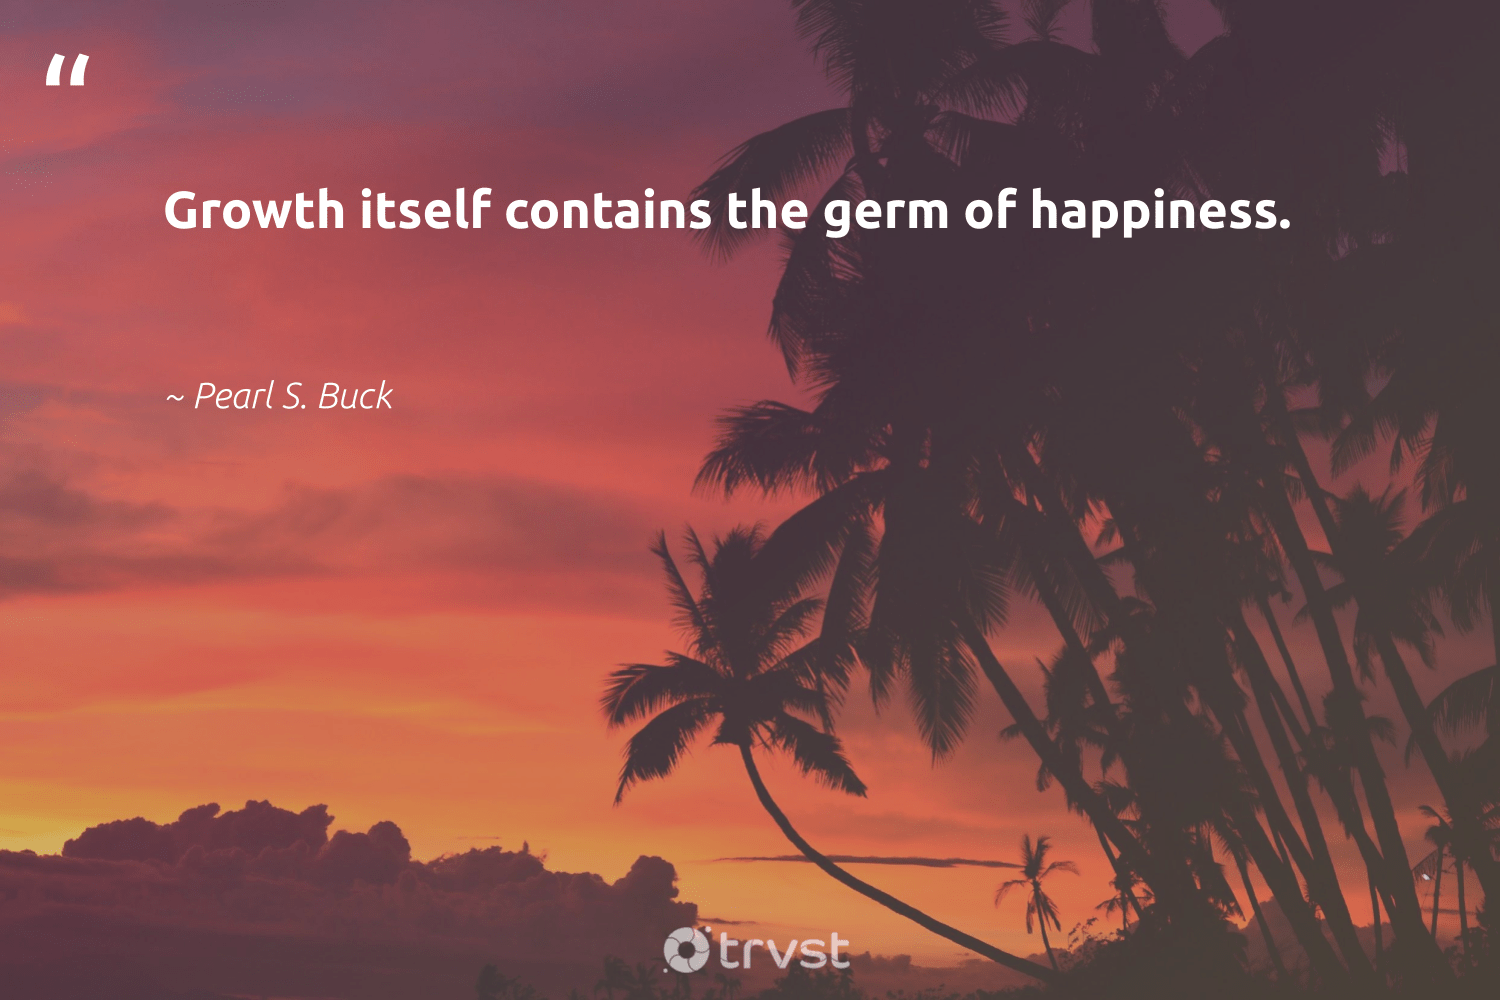 """""""Growth itself contains the germ of happiness.""""  - Pearl S. Buck #trvst #quotes #happiness #mindset #dosomething #togetherwecan #changetheworld #nevergiveup #dogood #changemakers #impact #health"""